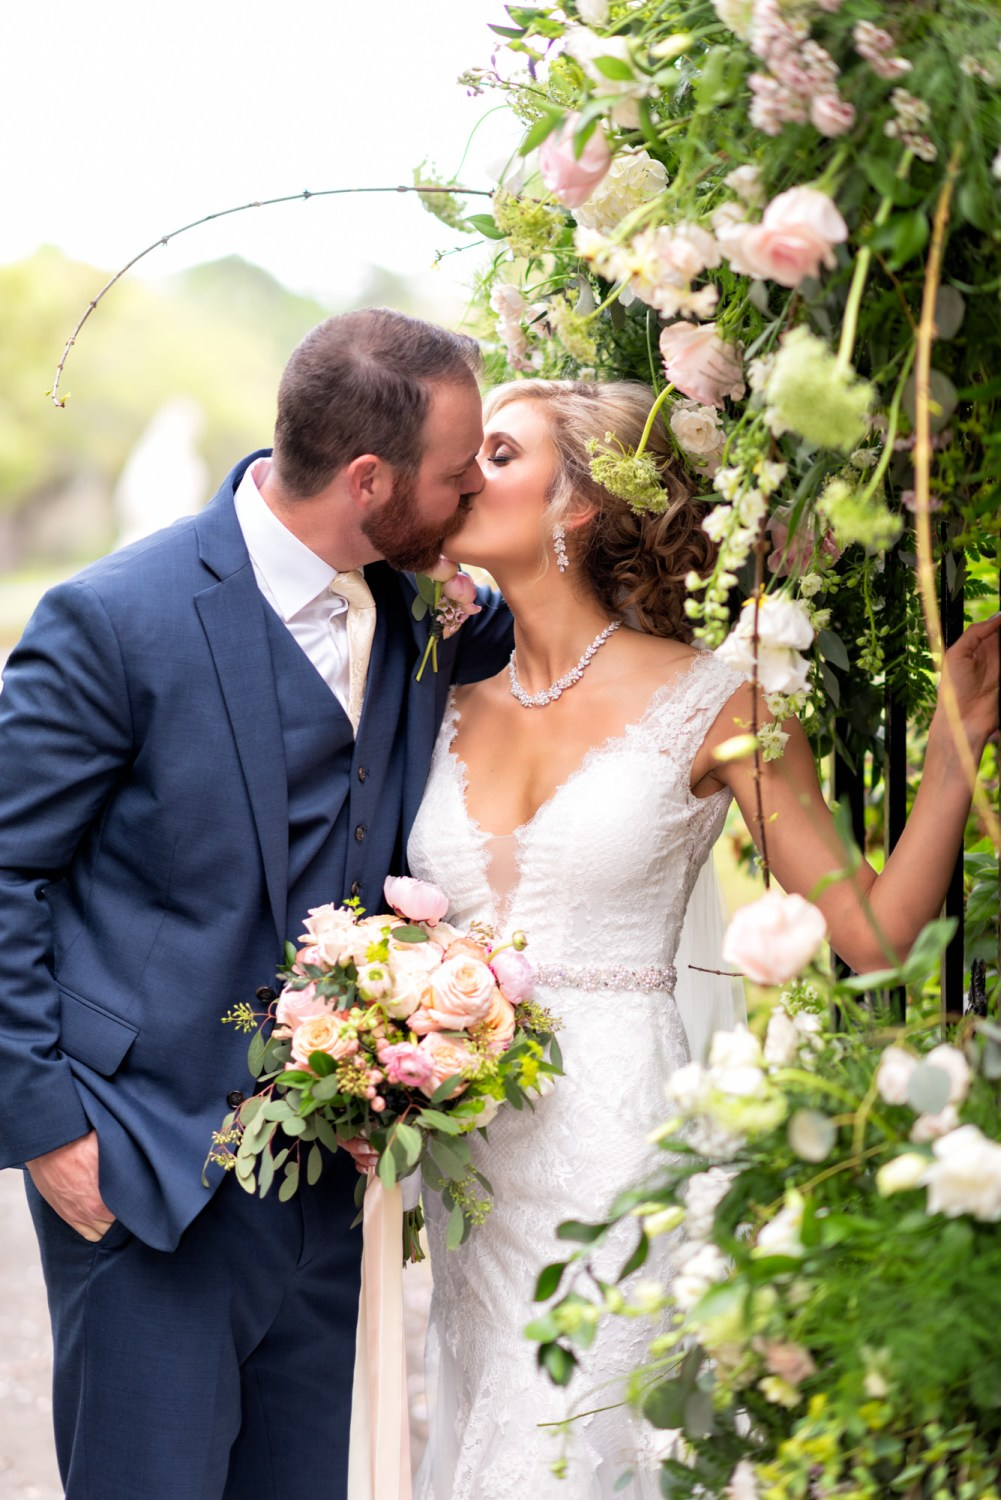 Kiss by the flowers on the gates - Brookgreen Gardens